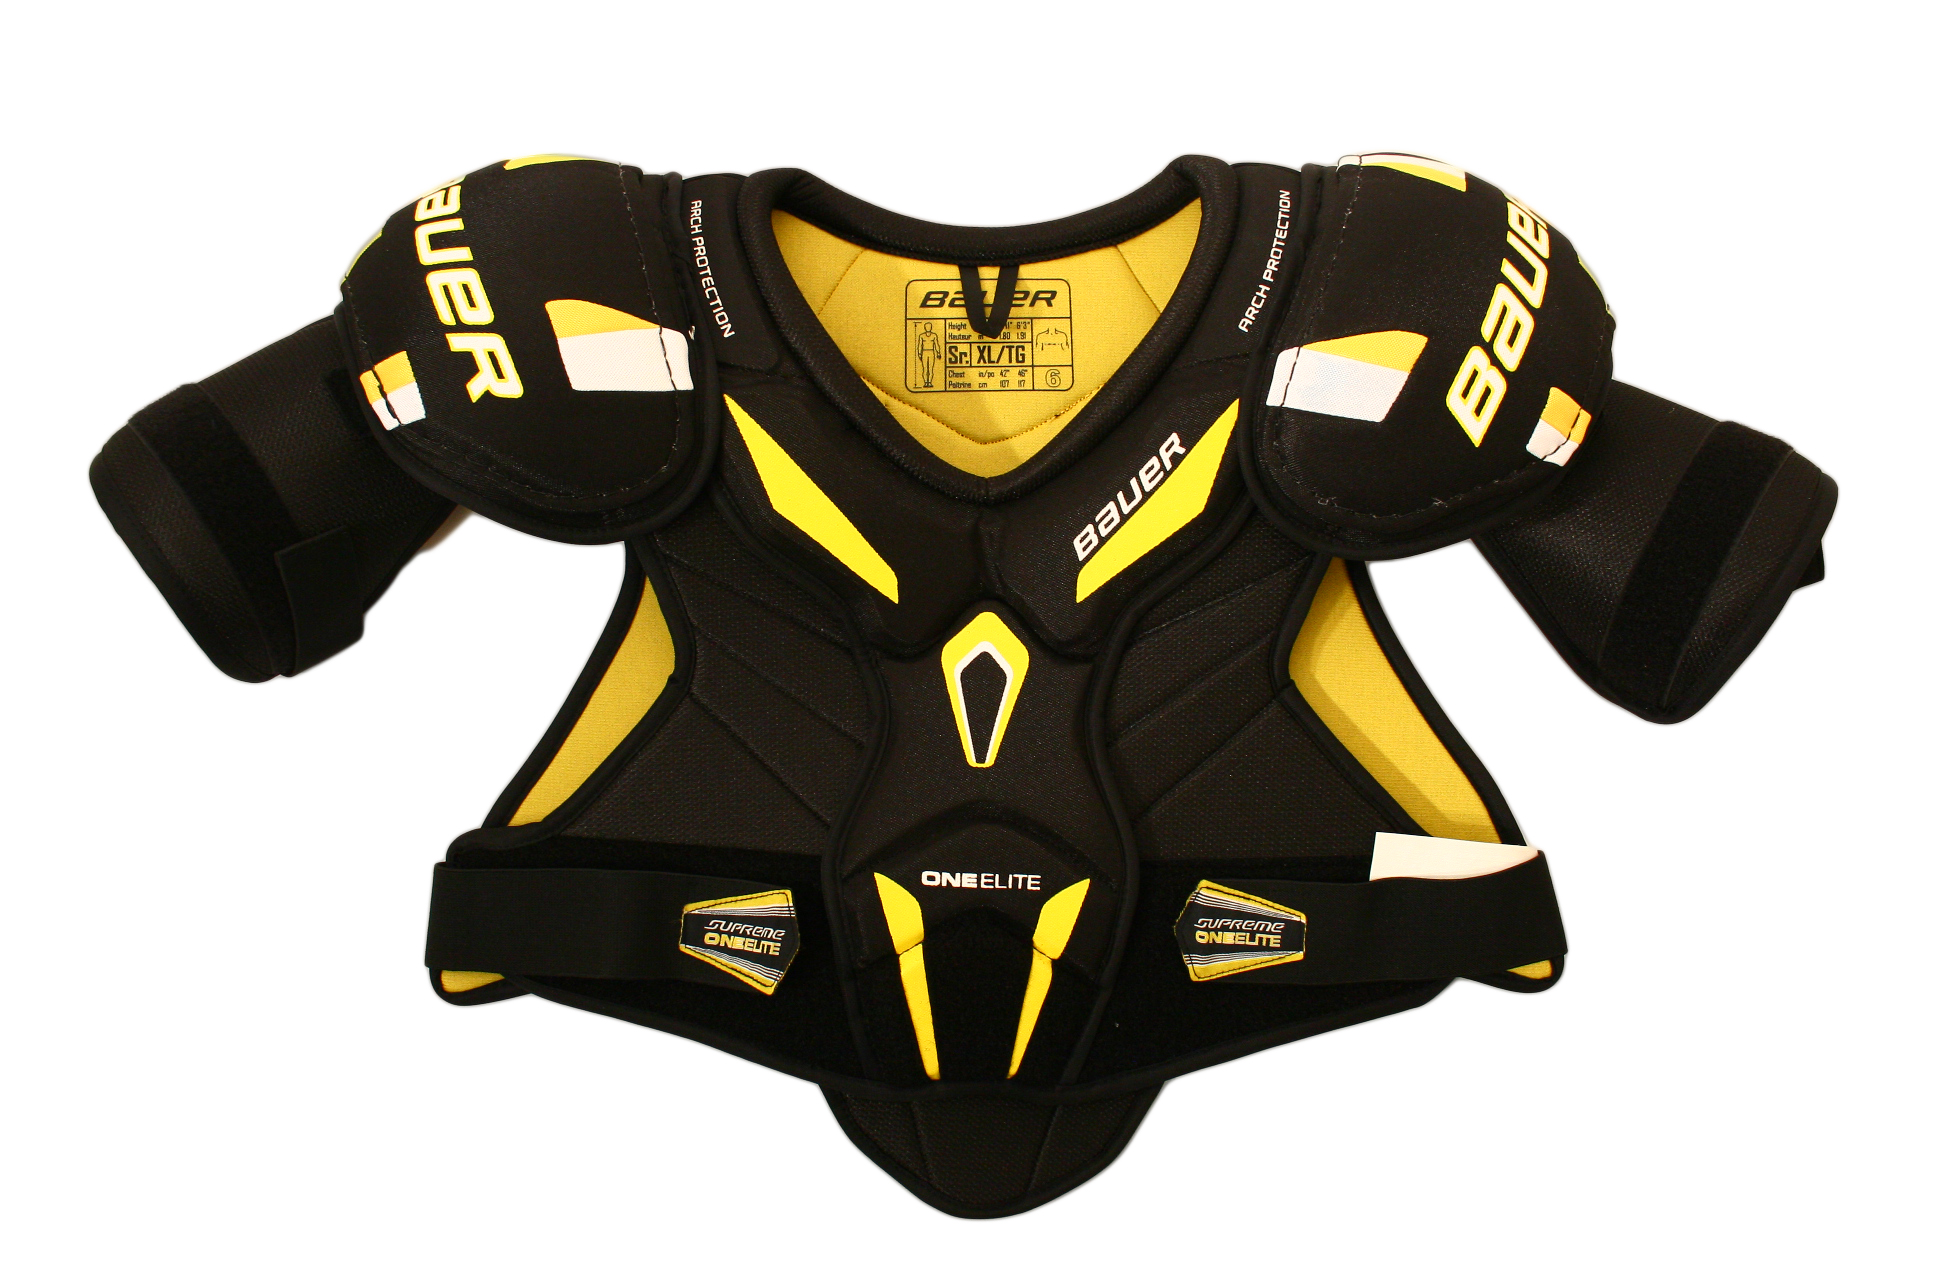 6394f728b1c Bauer supreme one elite senior shoulder pads ebay jpg 1936x1288 Ice hockey  shoulder protector